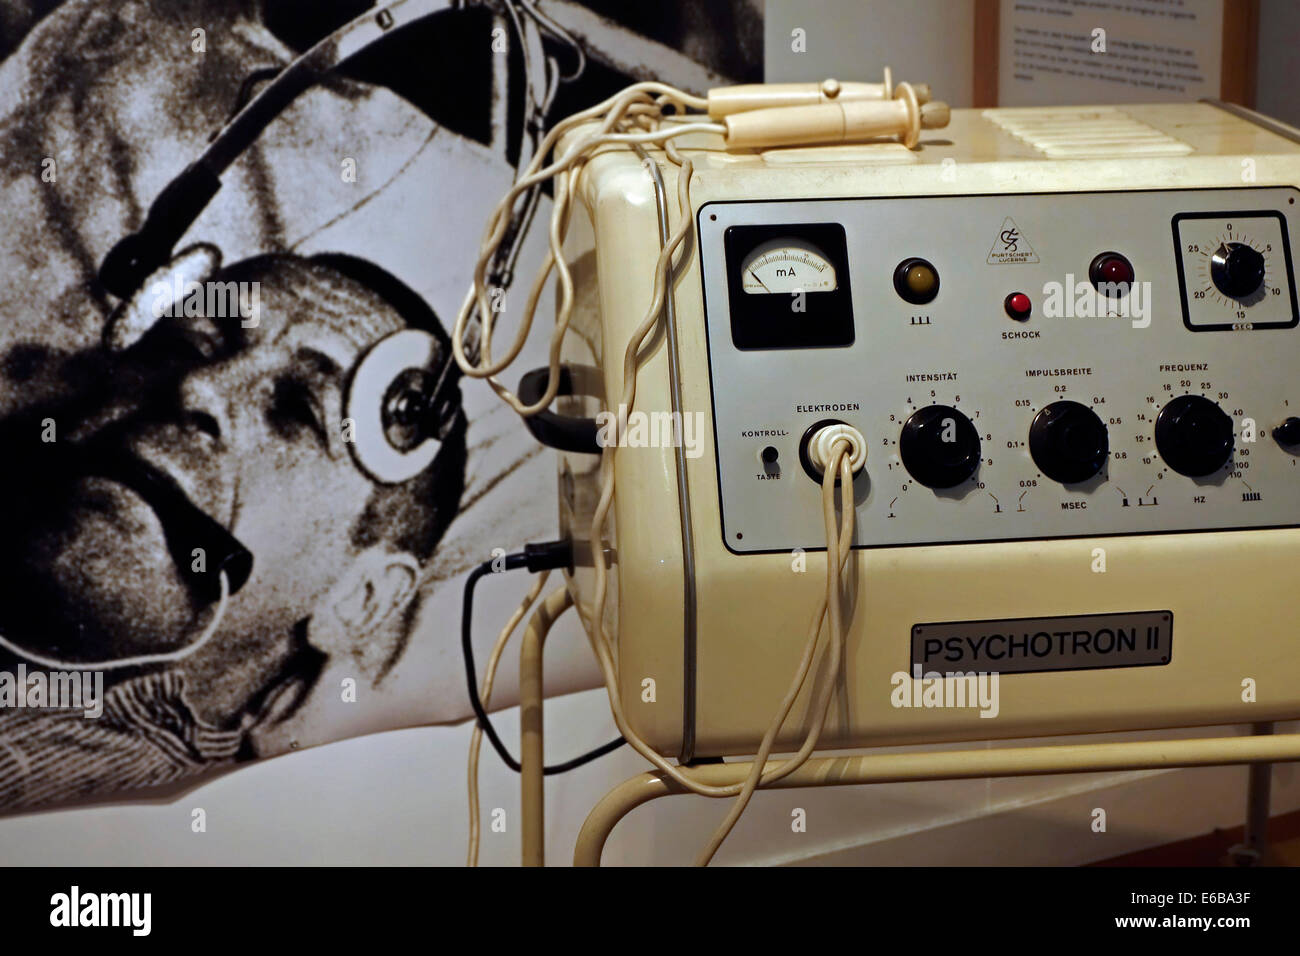 Psychotron II for electroshock therapy / electroconvulsive therapy / ECT, Dr Guislain Museum about psychiatry, Ghent, - Stock Image